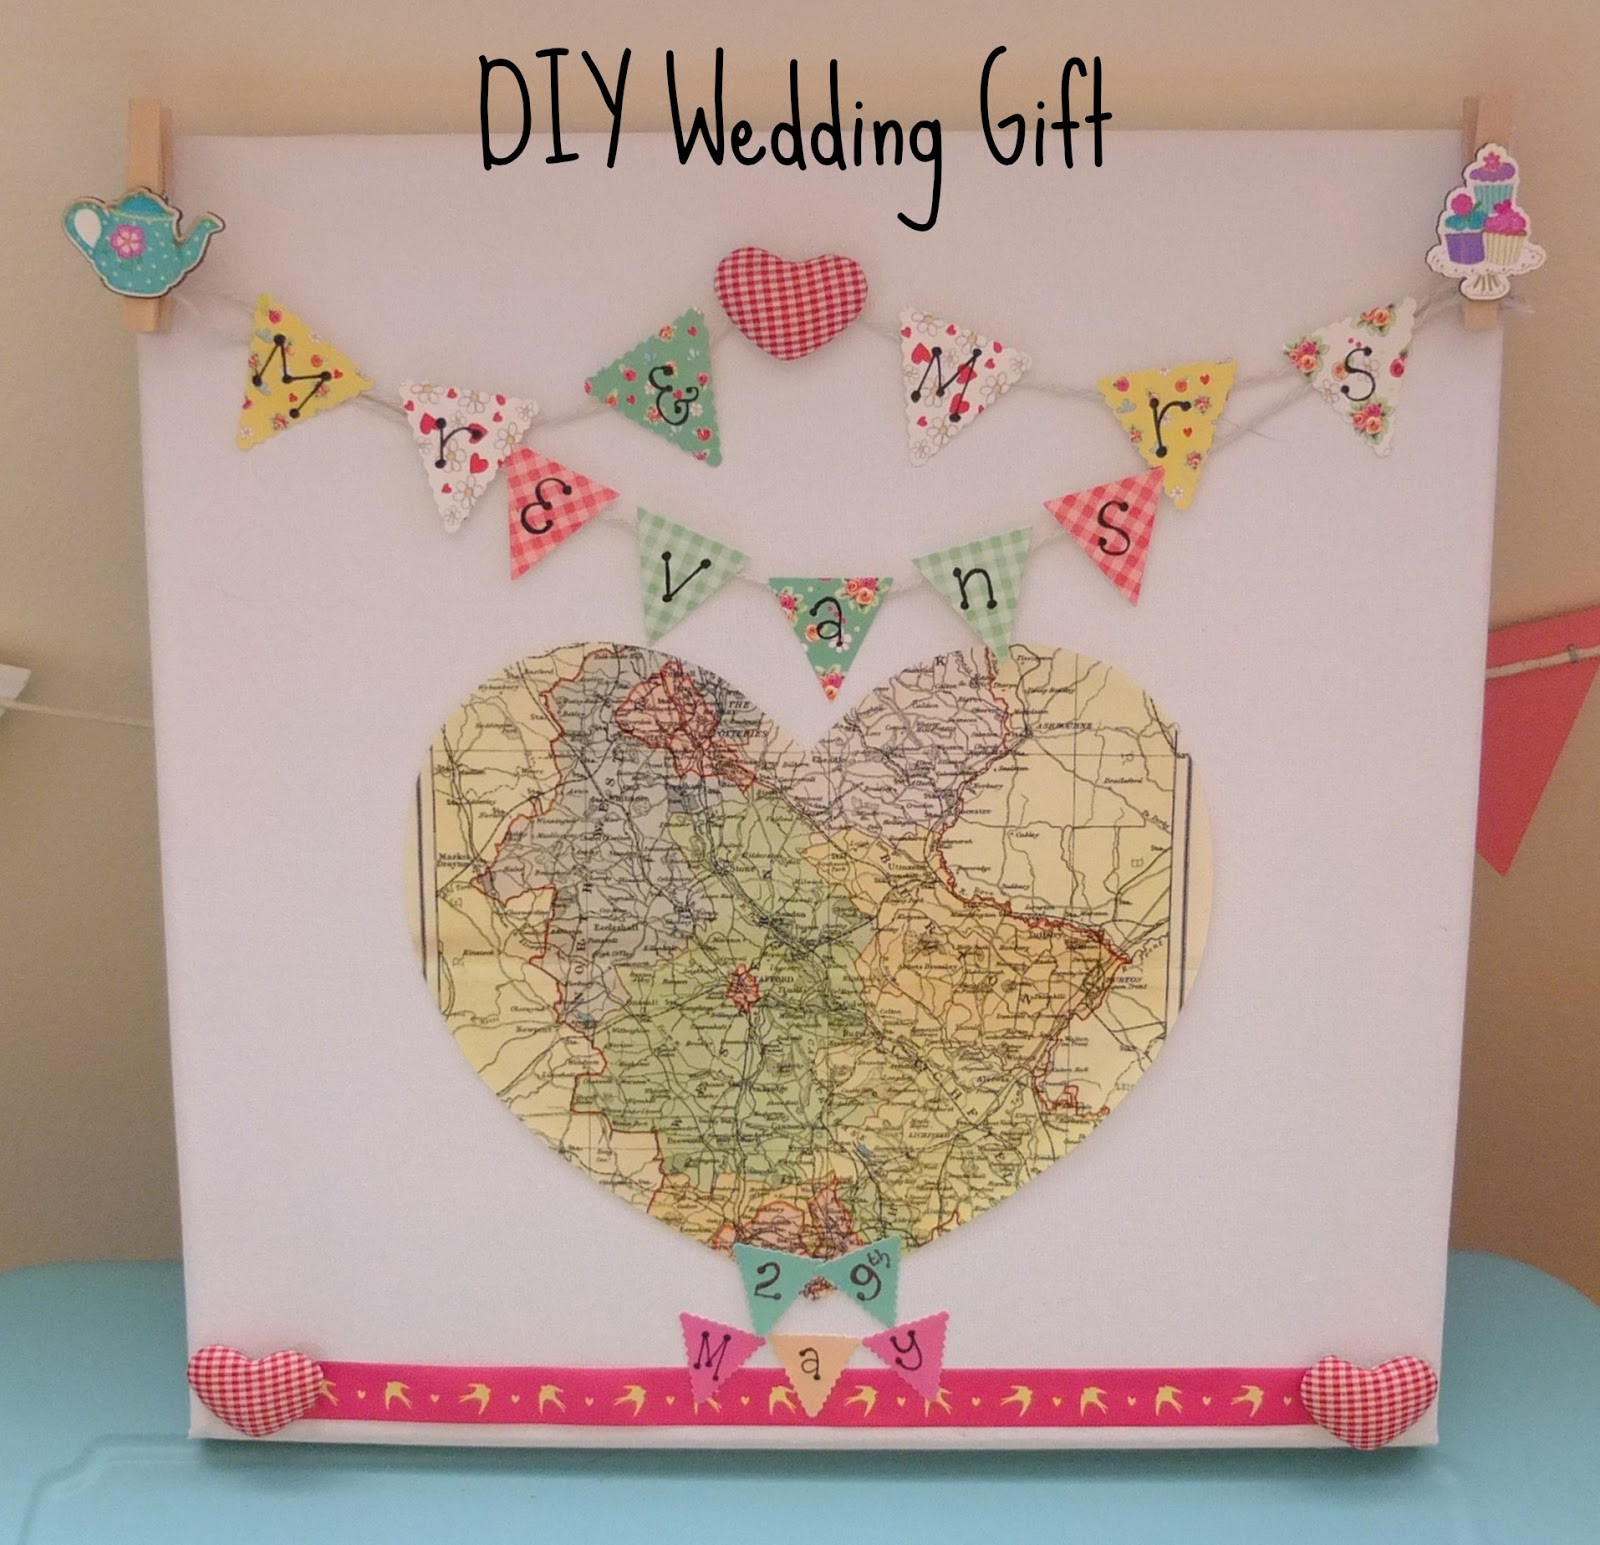 Best ideas about DIY Wedding Gift . Save or Pin DIY Wedding Gift on a Bud Hello Terri Lowe Now.